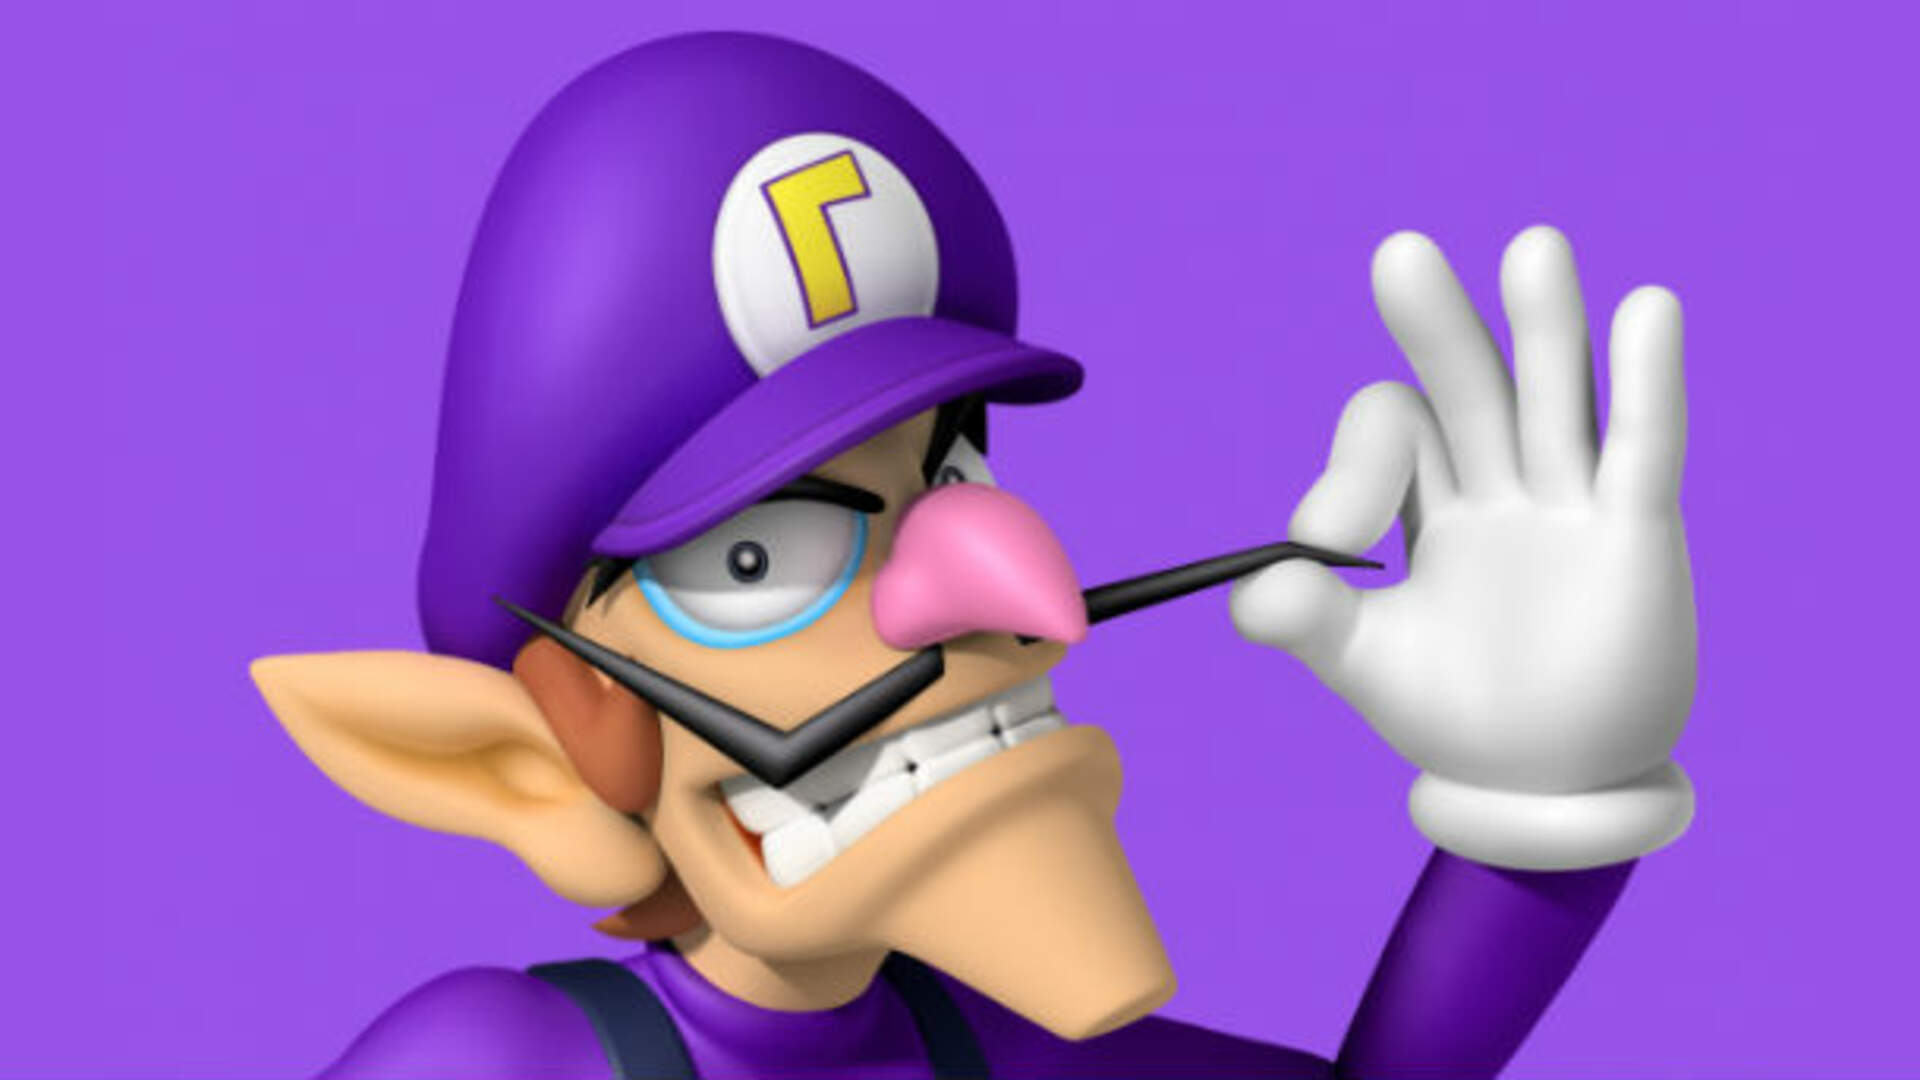 Super Smash Bros. Ultimate Glitch Turns the Game into a Waluigi Hell-World